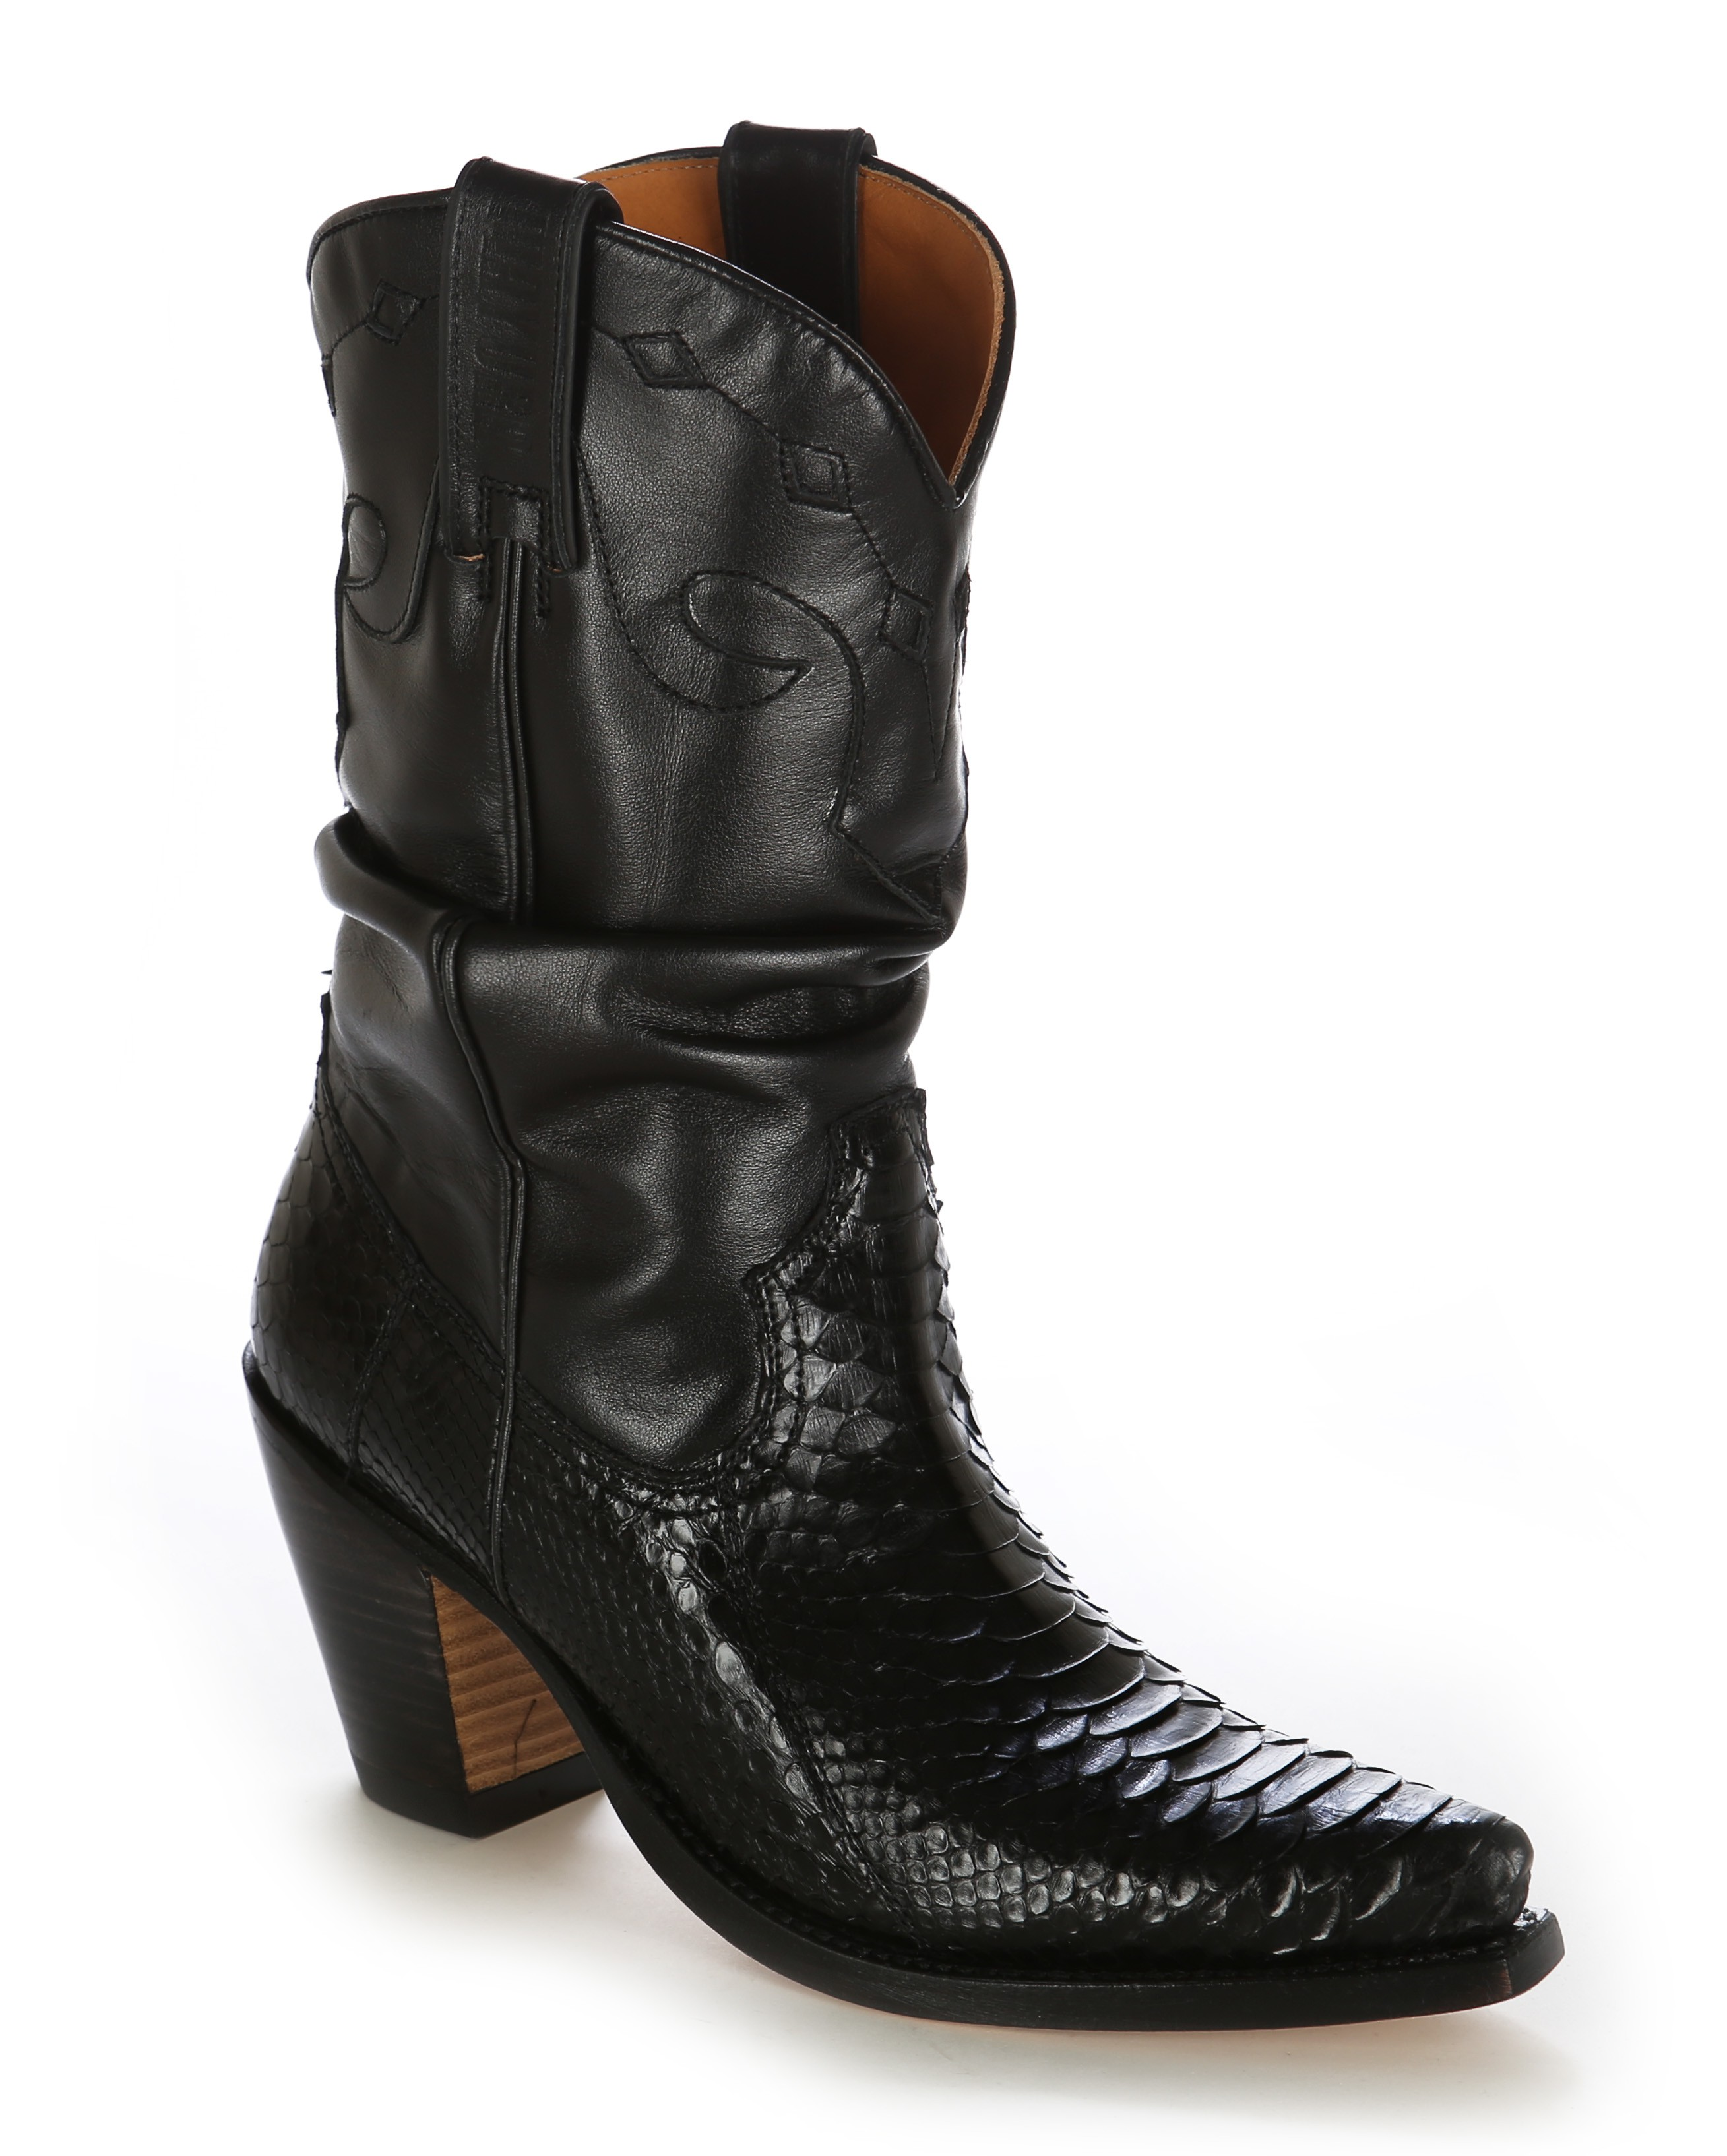 Black and white snakeskin cowboy boots Real snakeskin leather boots